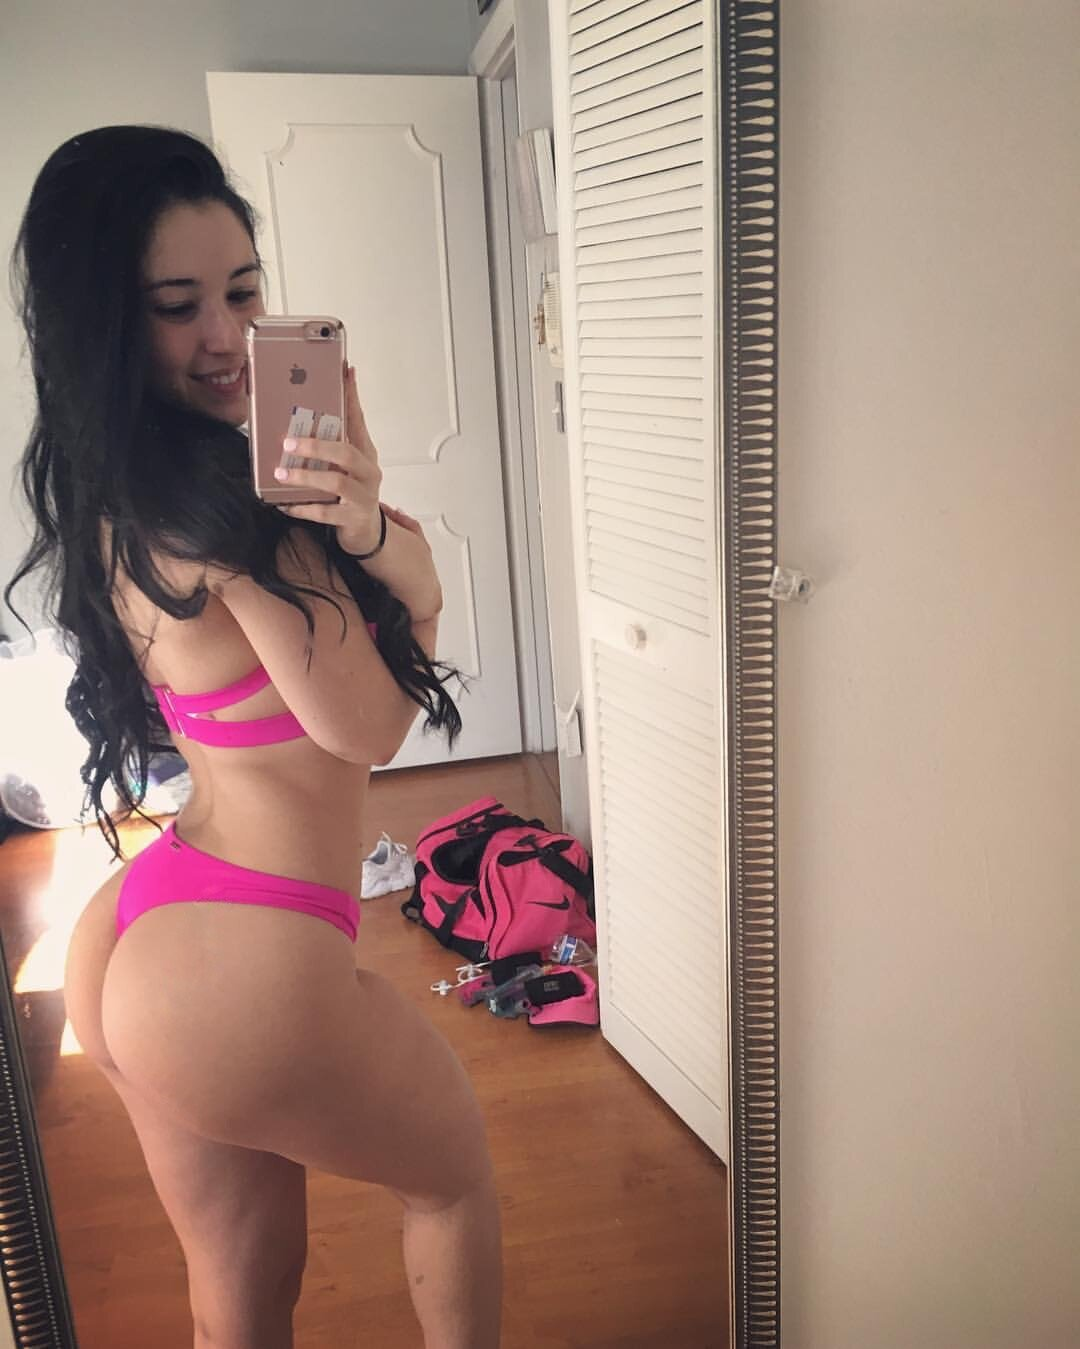 Angie Varona: How a 14-Year-Old Unwillingly Became an Internet Sex Symbol